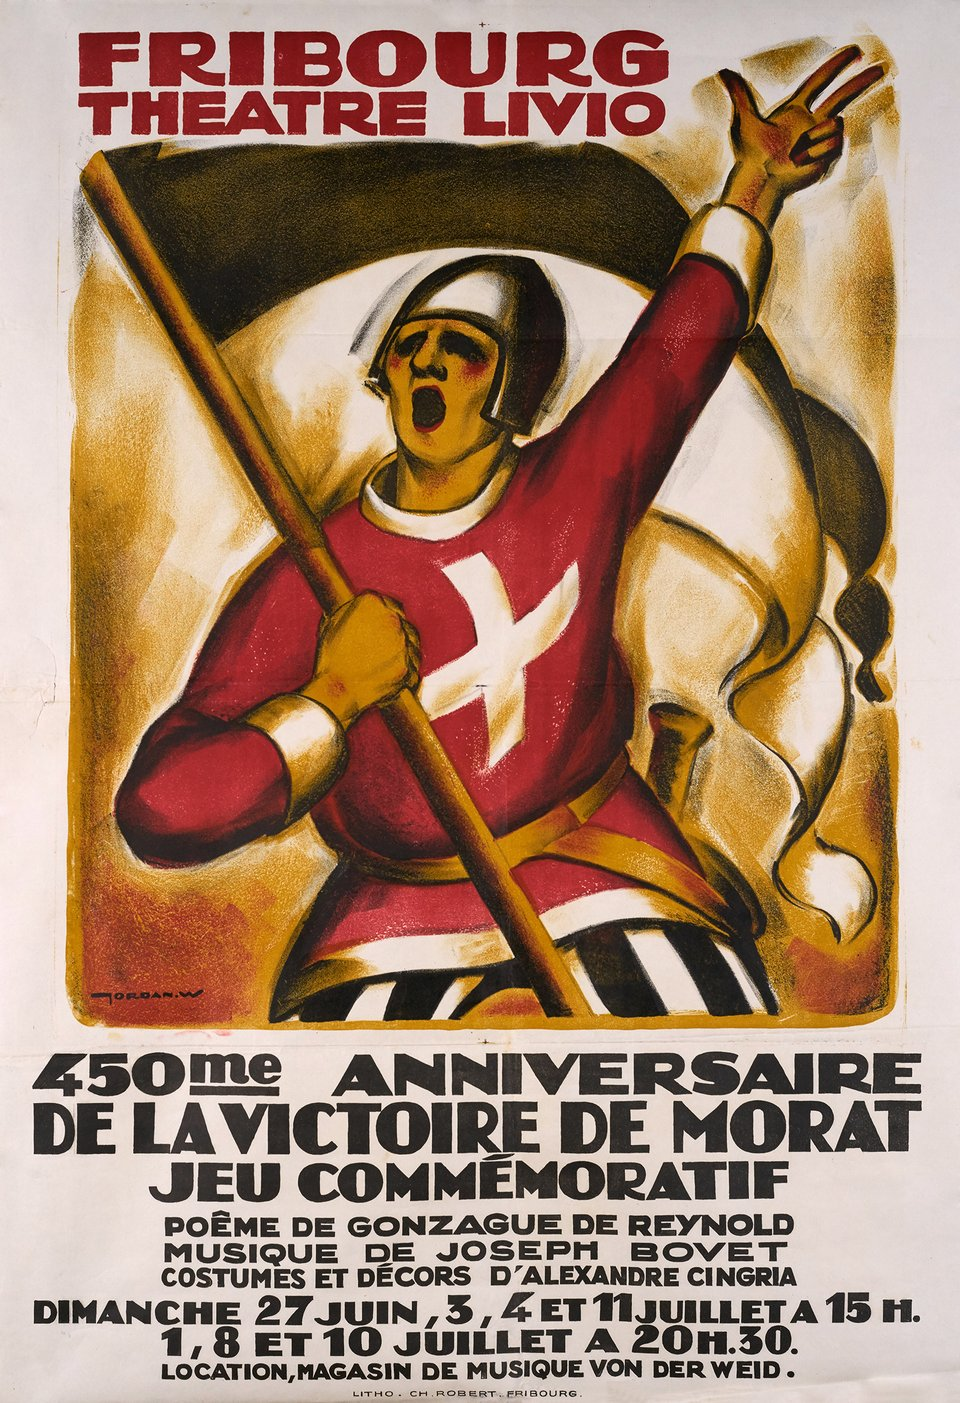 Fribourg Théâtre Livio – Vintage poster – Willy JORDAN – 1926